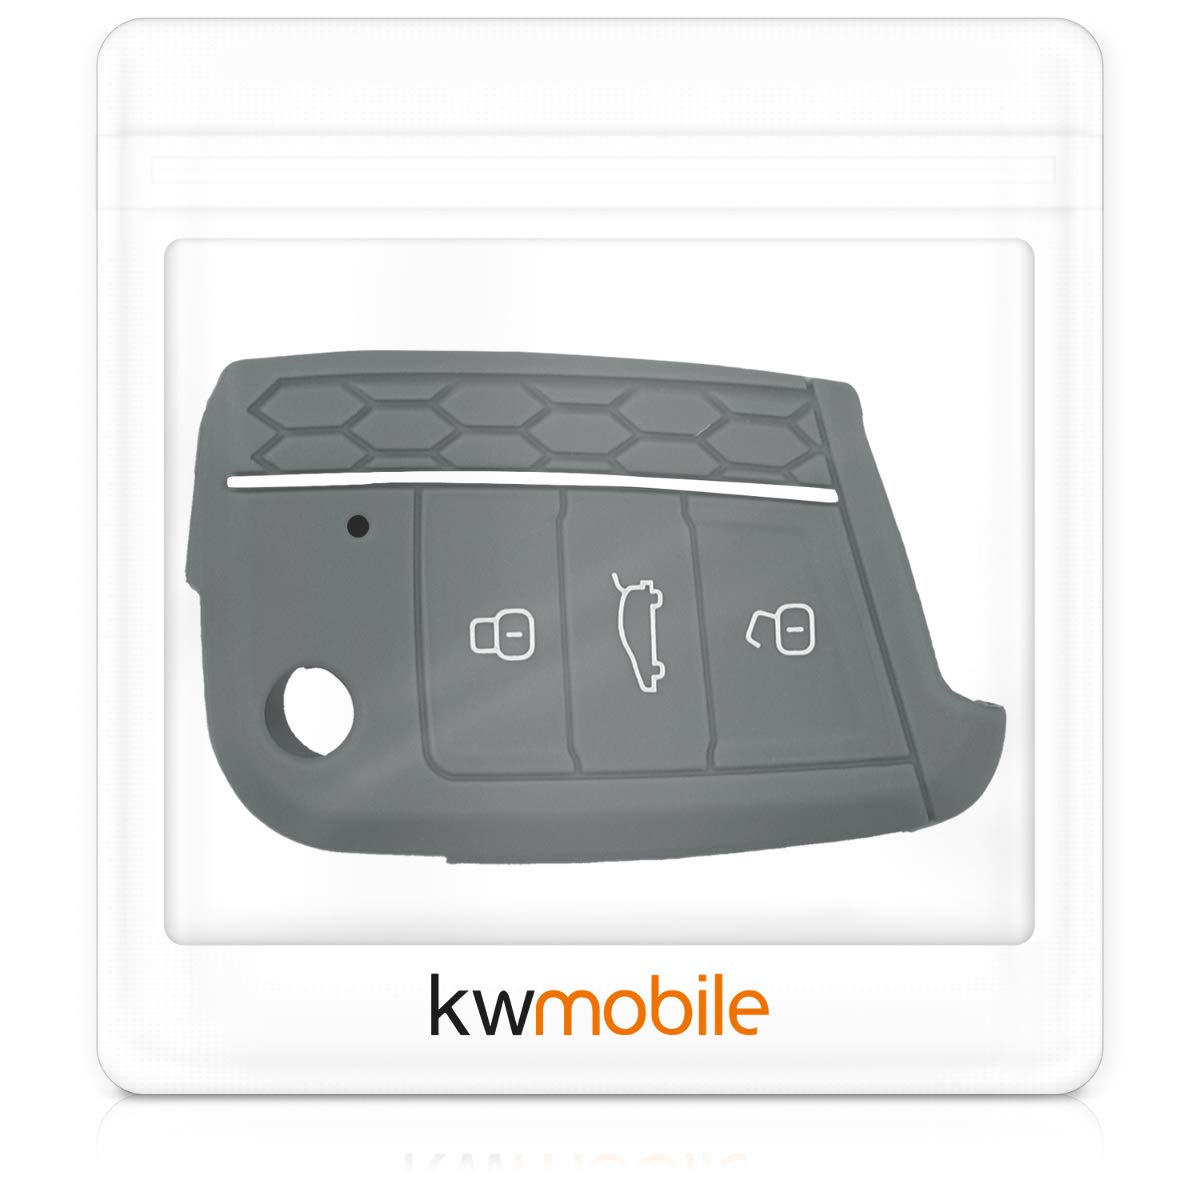 kwmobile Car Key Cover for VW Golf 7 MK7 - Silicone Protective Key Fob Cover for VW Golf 7 MK7 3 Button Car Key - Grey/White